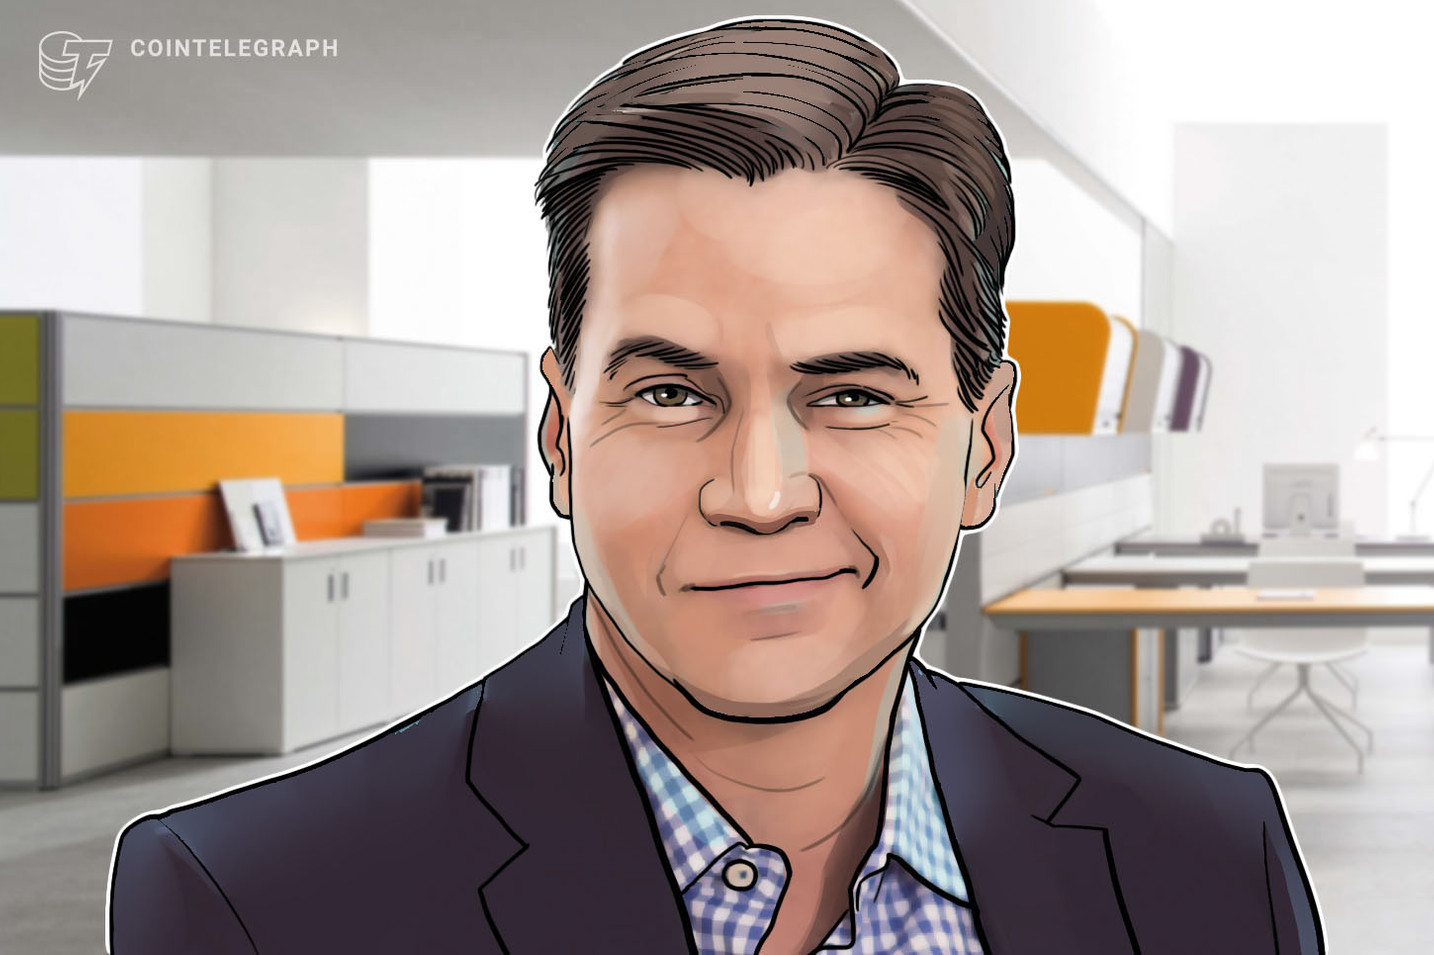 Bloomberg: Craig Wright Does Not Have Access to Bitcoin Fortune